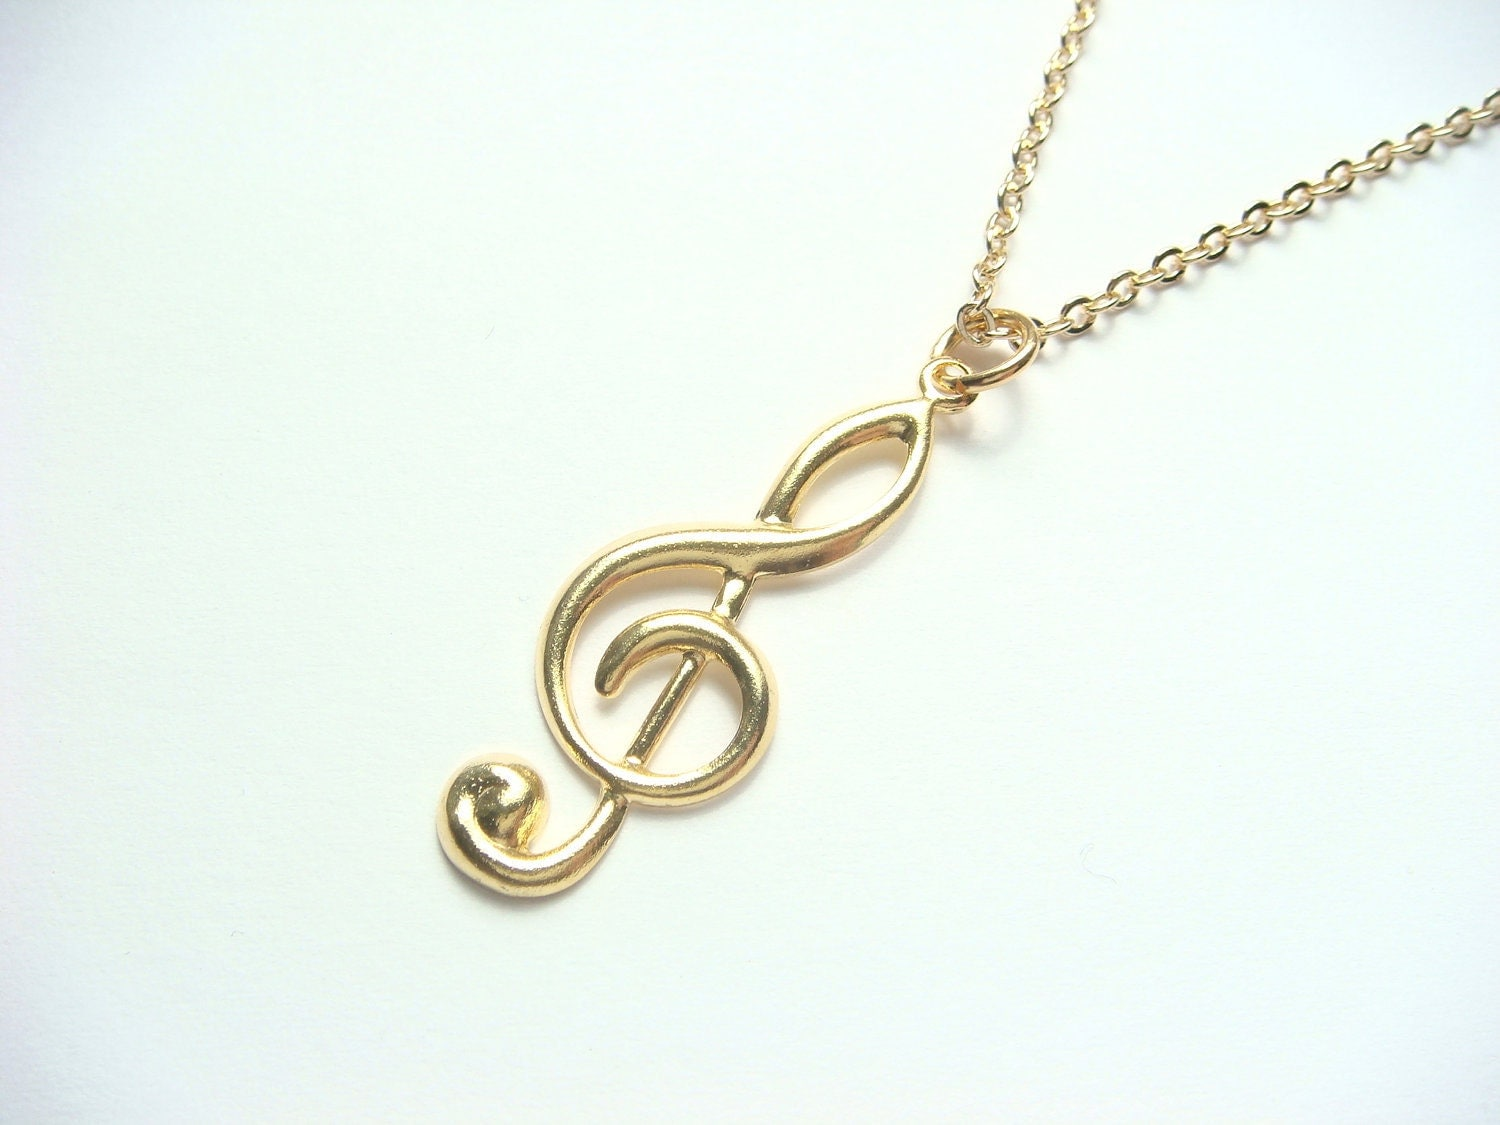 treble clef necklace in gold made with vintage charm